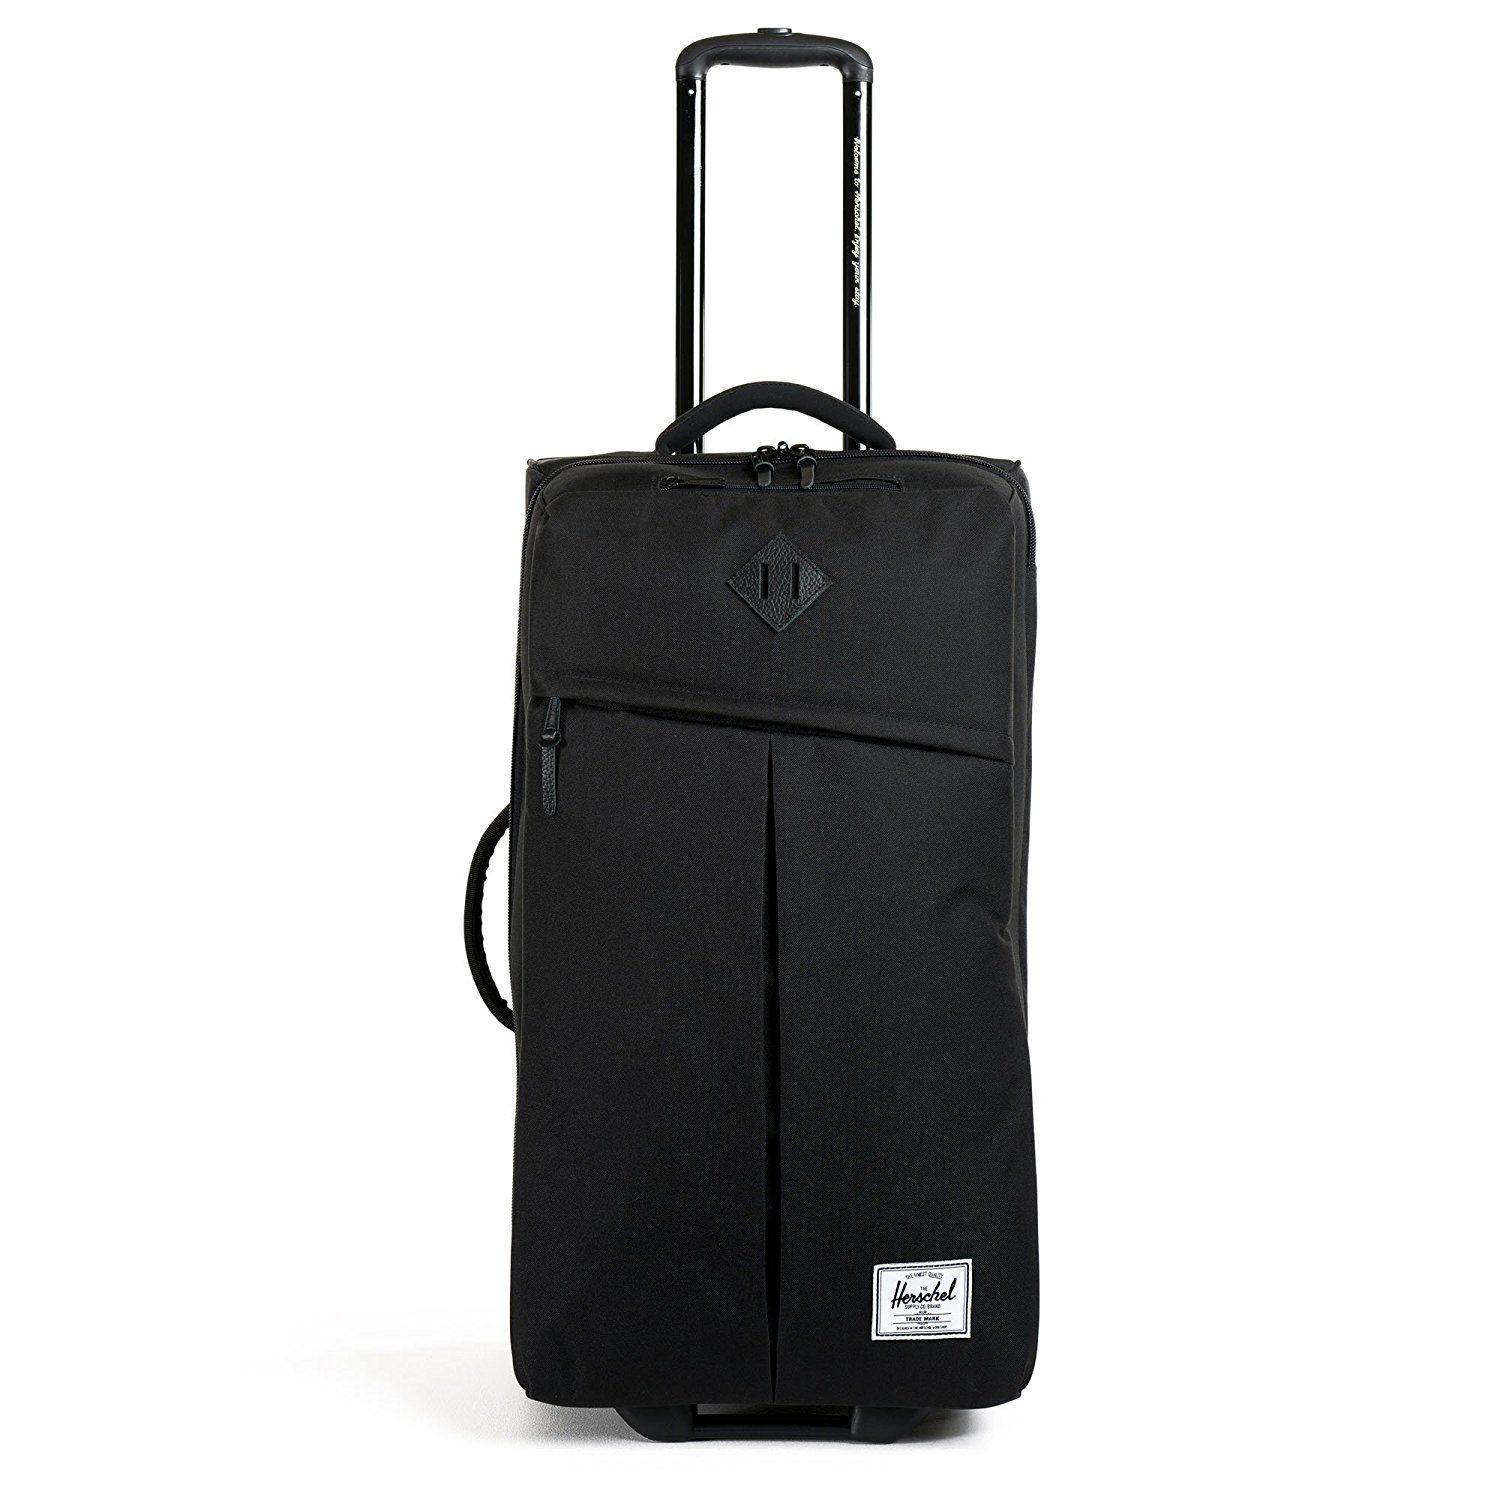 939315fea60 The 7 Best Herschel Luggage Items of 2019